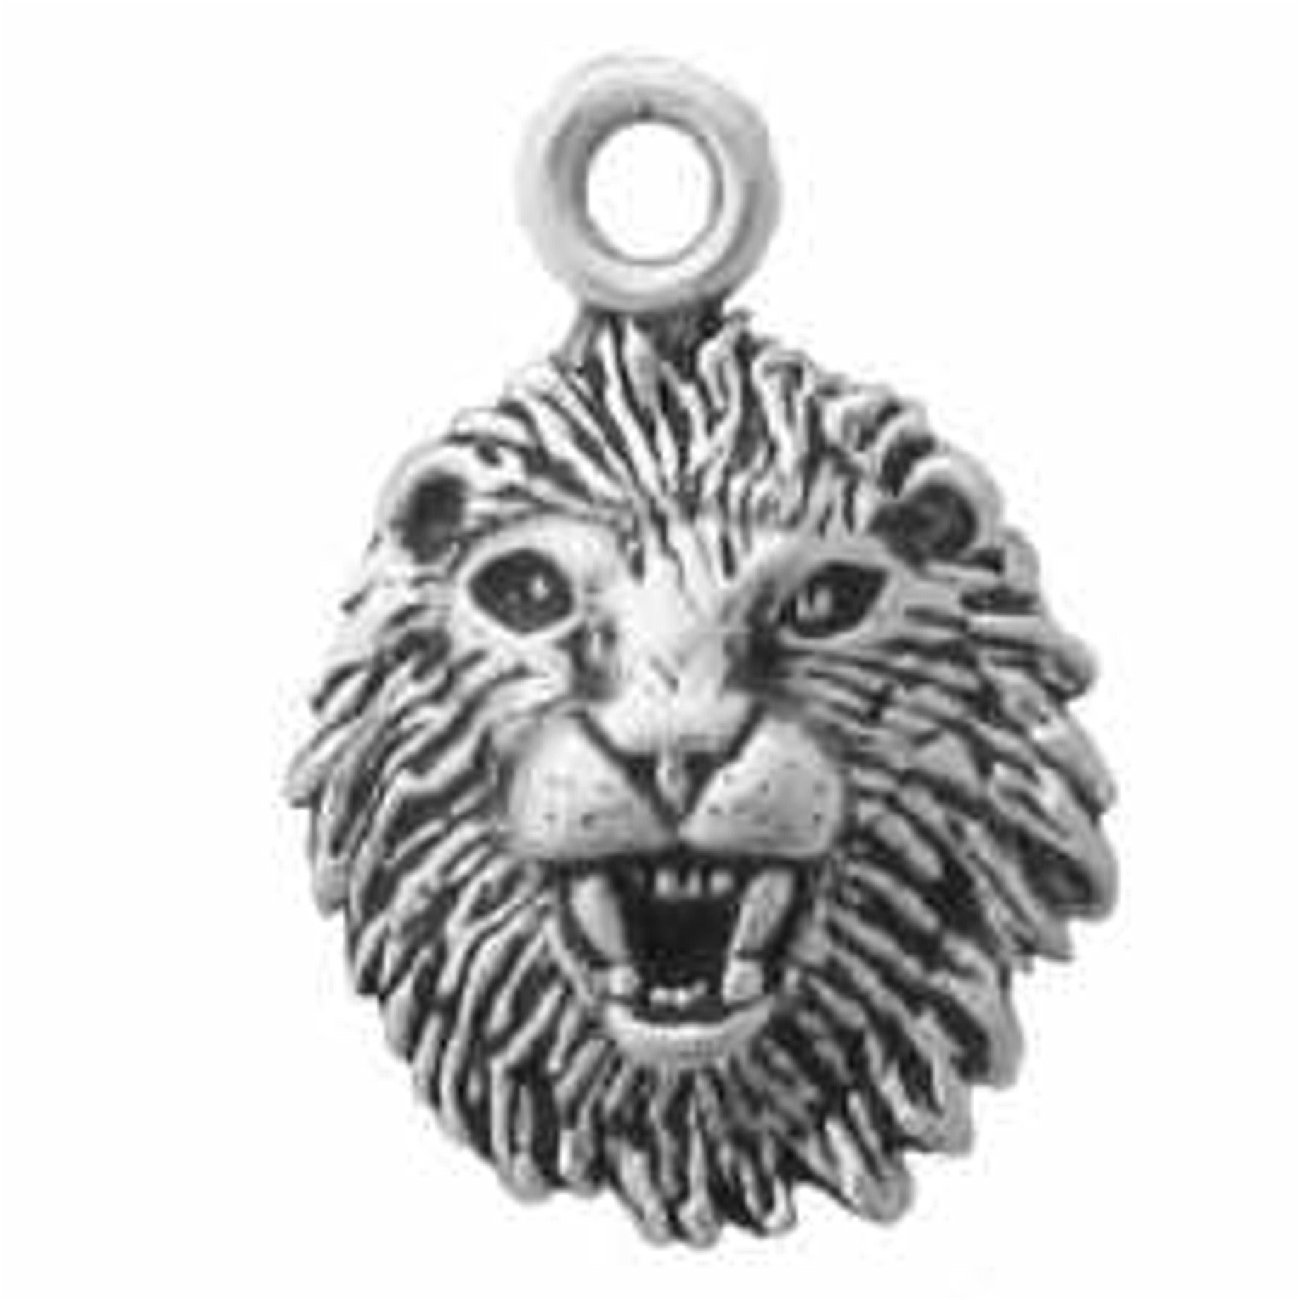 Sterling Silver 7 4.5mm Charm Bracelet With Attached Mini Lion Head Charm